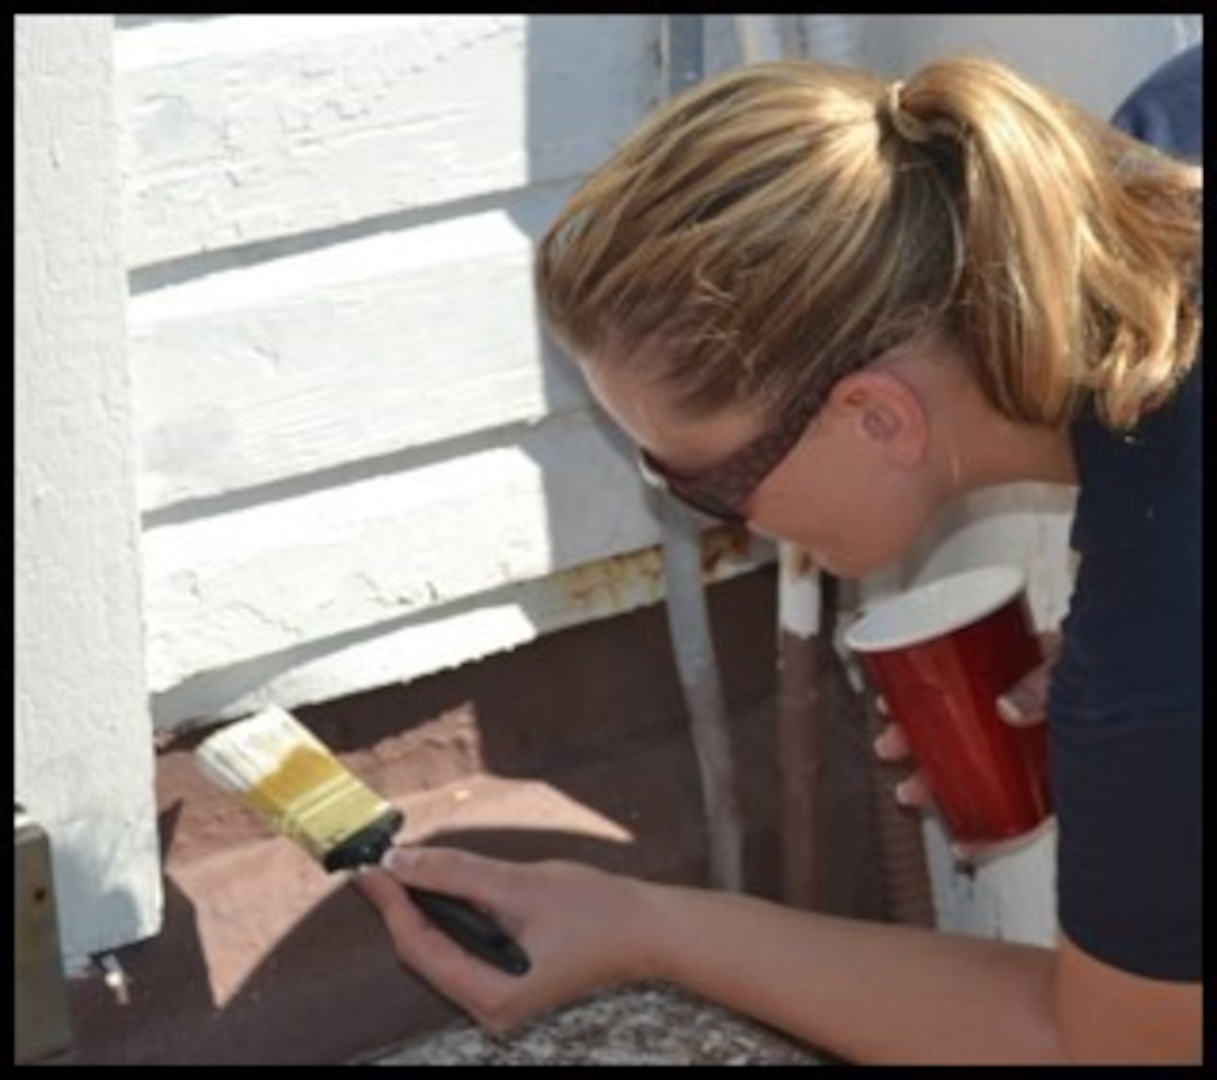 A 2012 photograph of Coast Guard Chief Petty Officer Kristin Antonides of Port Security Unit 309 painting the quarters building in her spare time. (Used with permission)